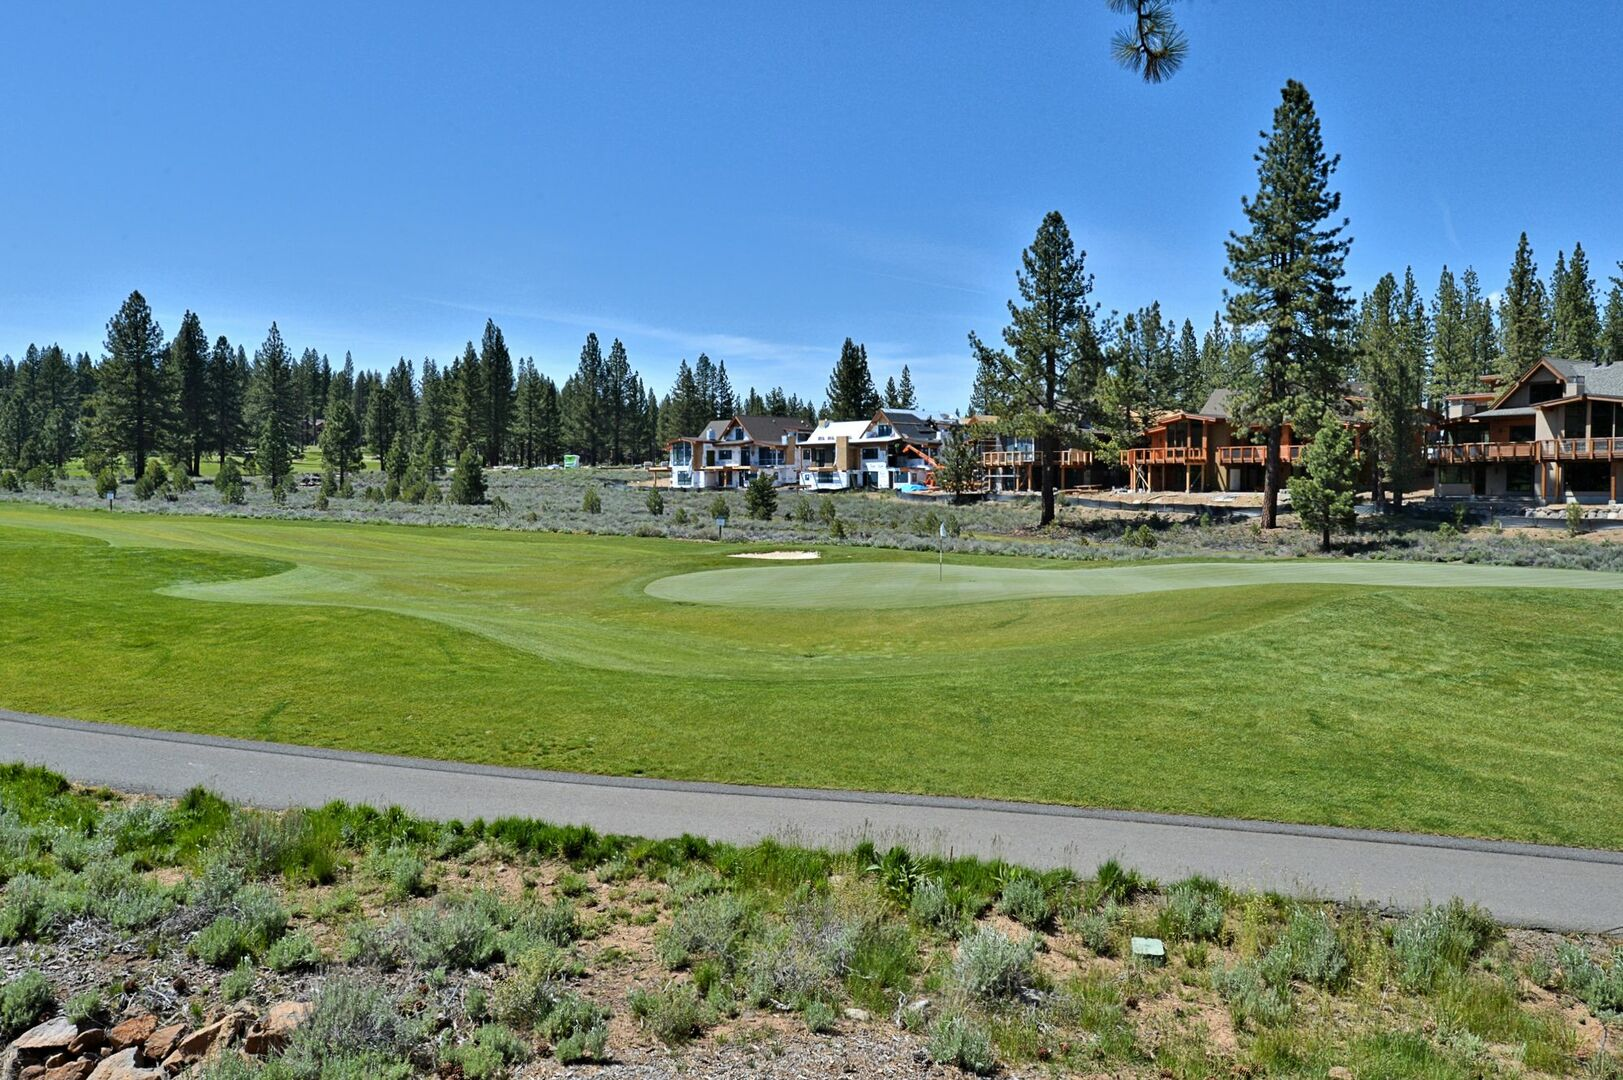 An Image of the Landscape Outside Vacation Rental in Truckee CA.